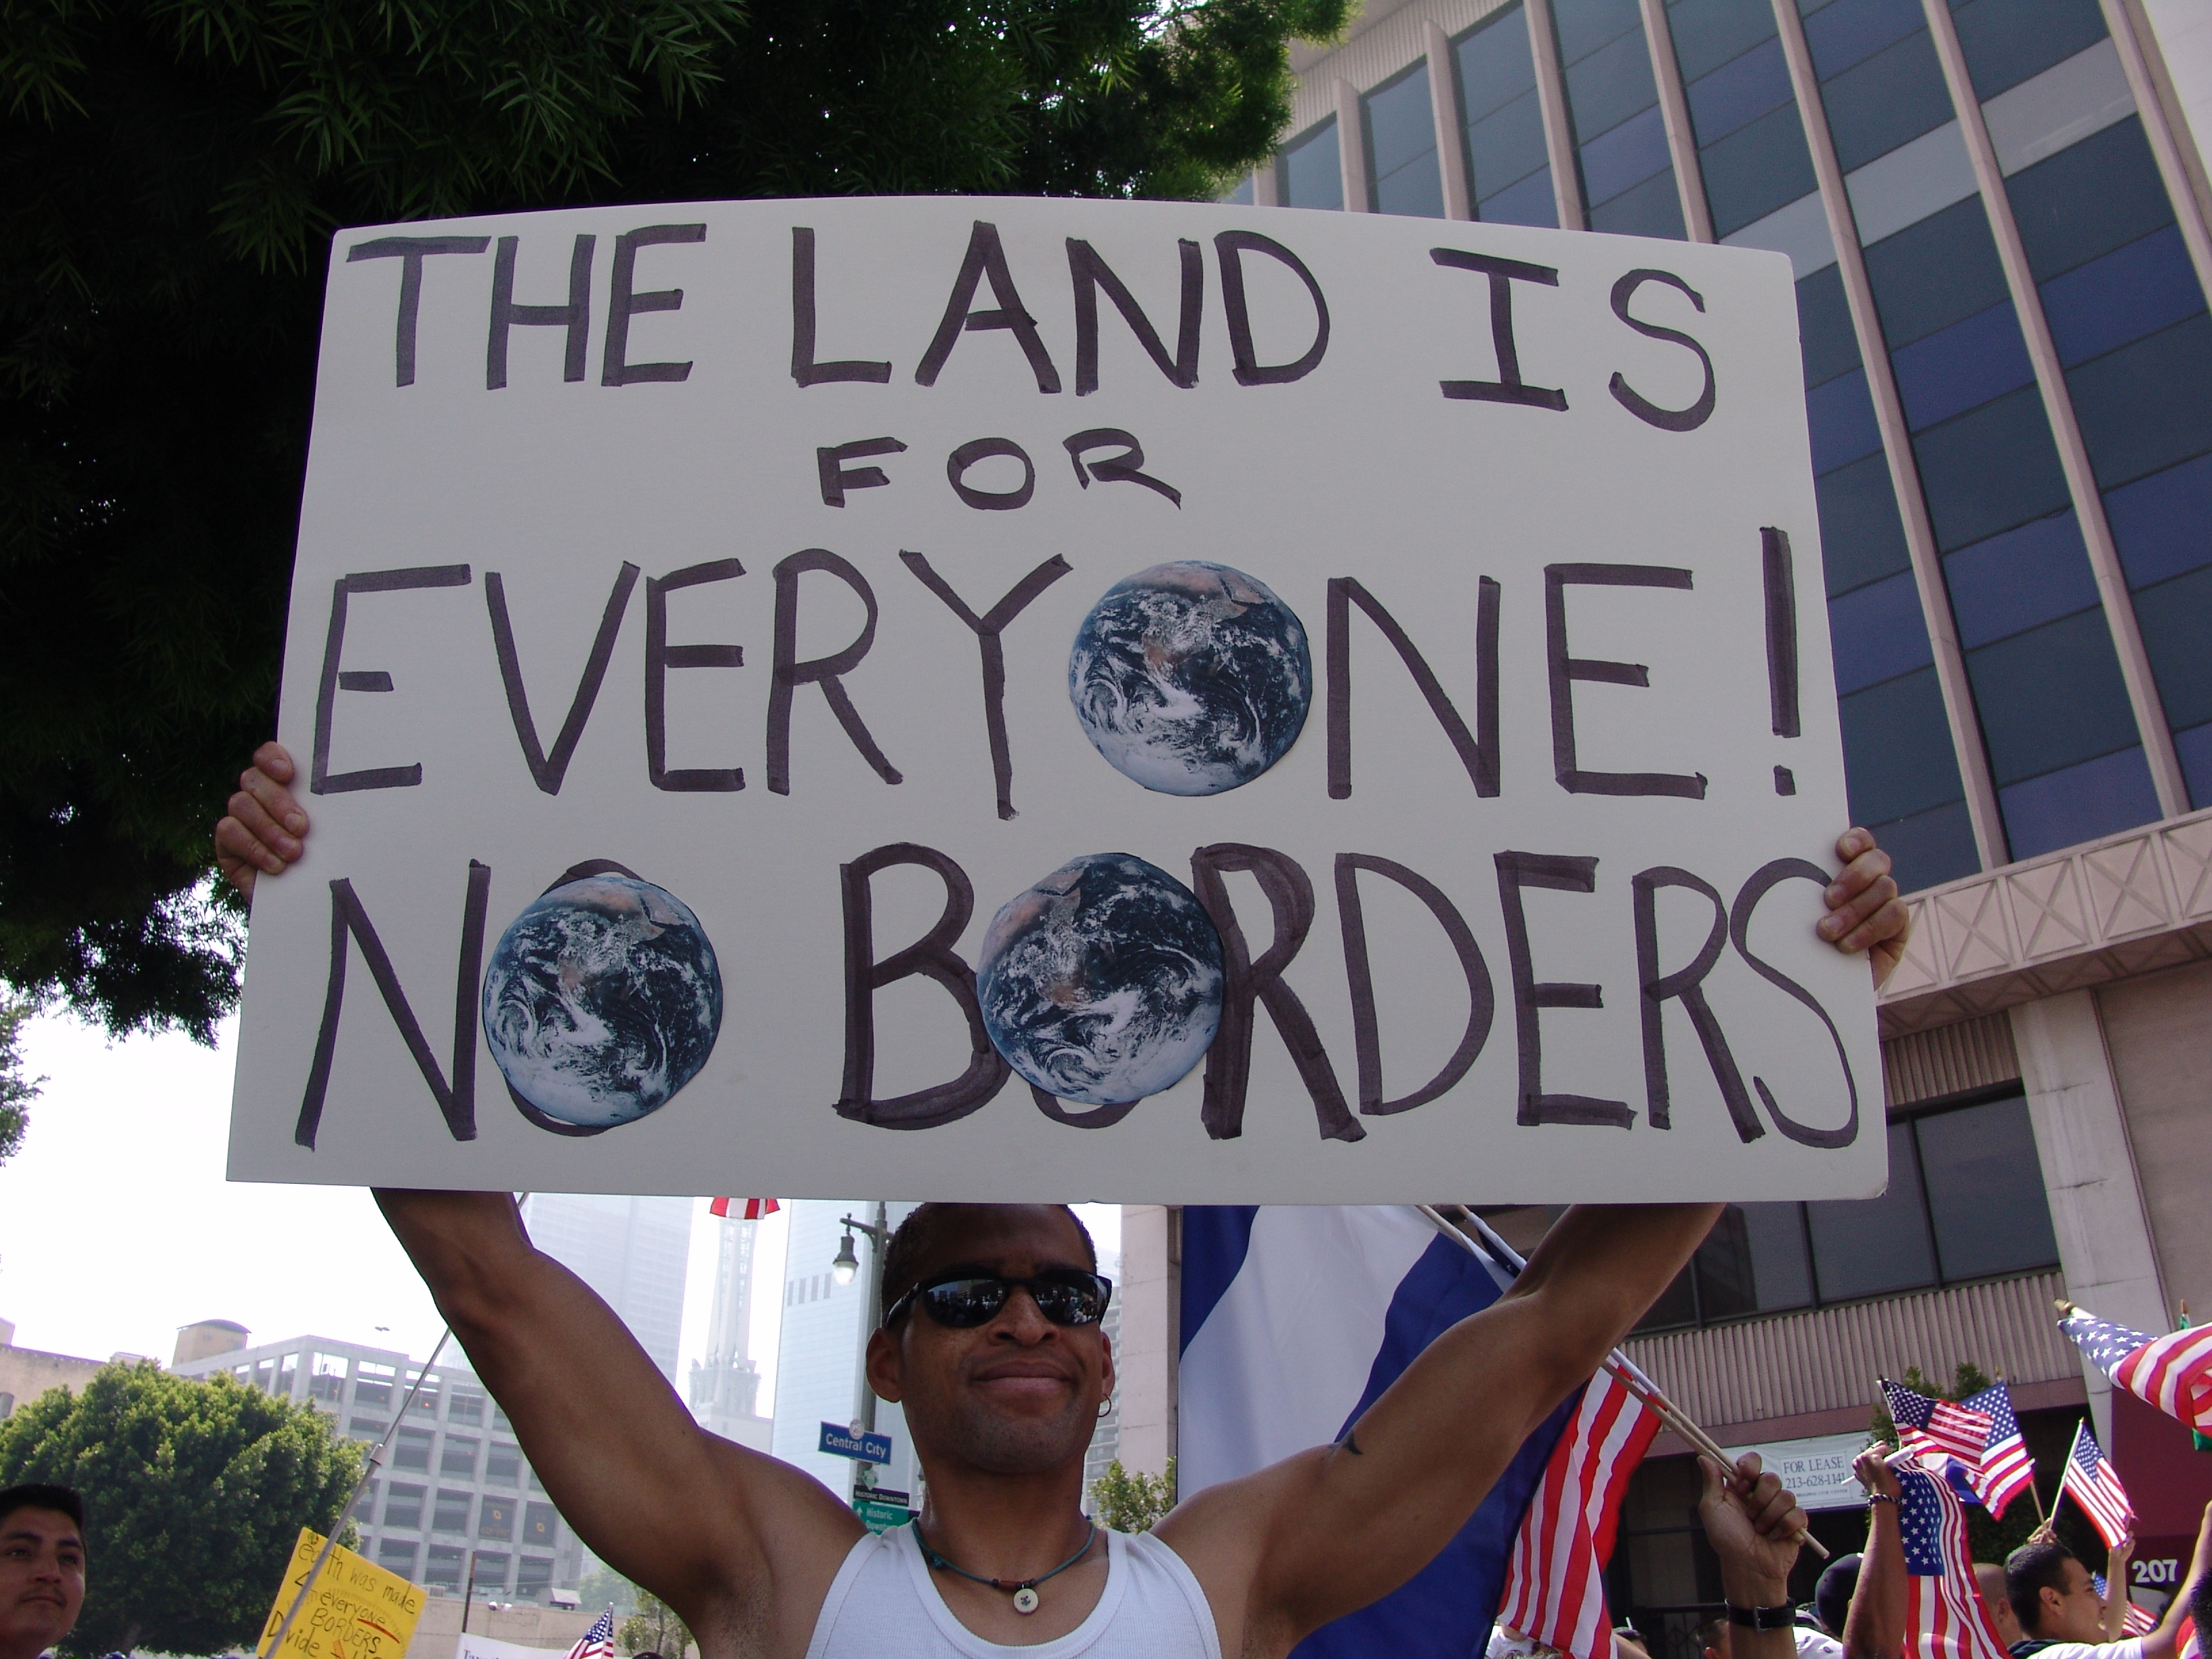 the immigration crisis Some democrats have speculated that trump is using the humanitarian crisis as leverage to negotiate a tougher immigration bill, an assertion the white house has rejected.